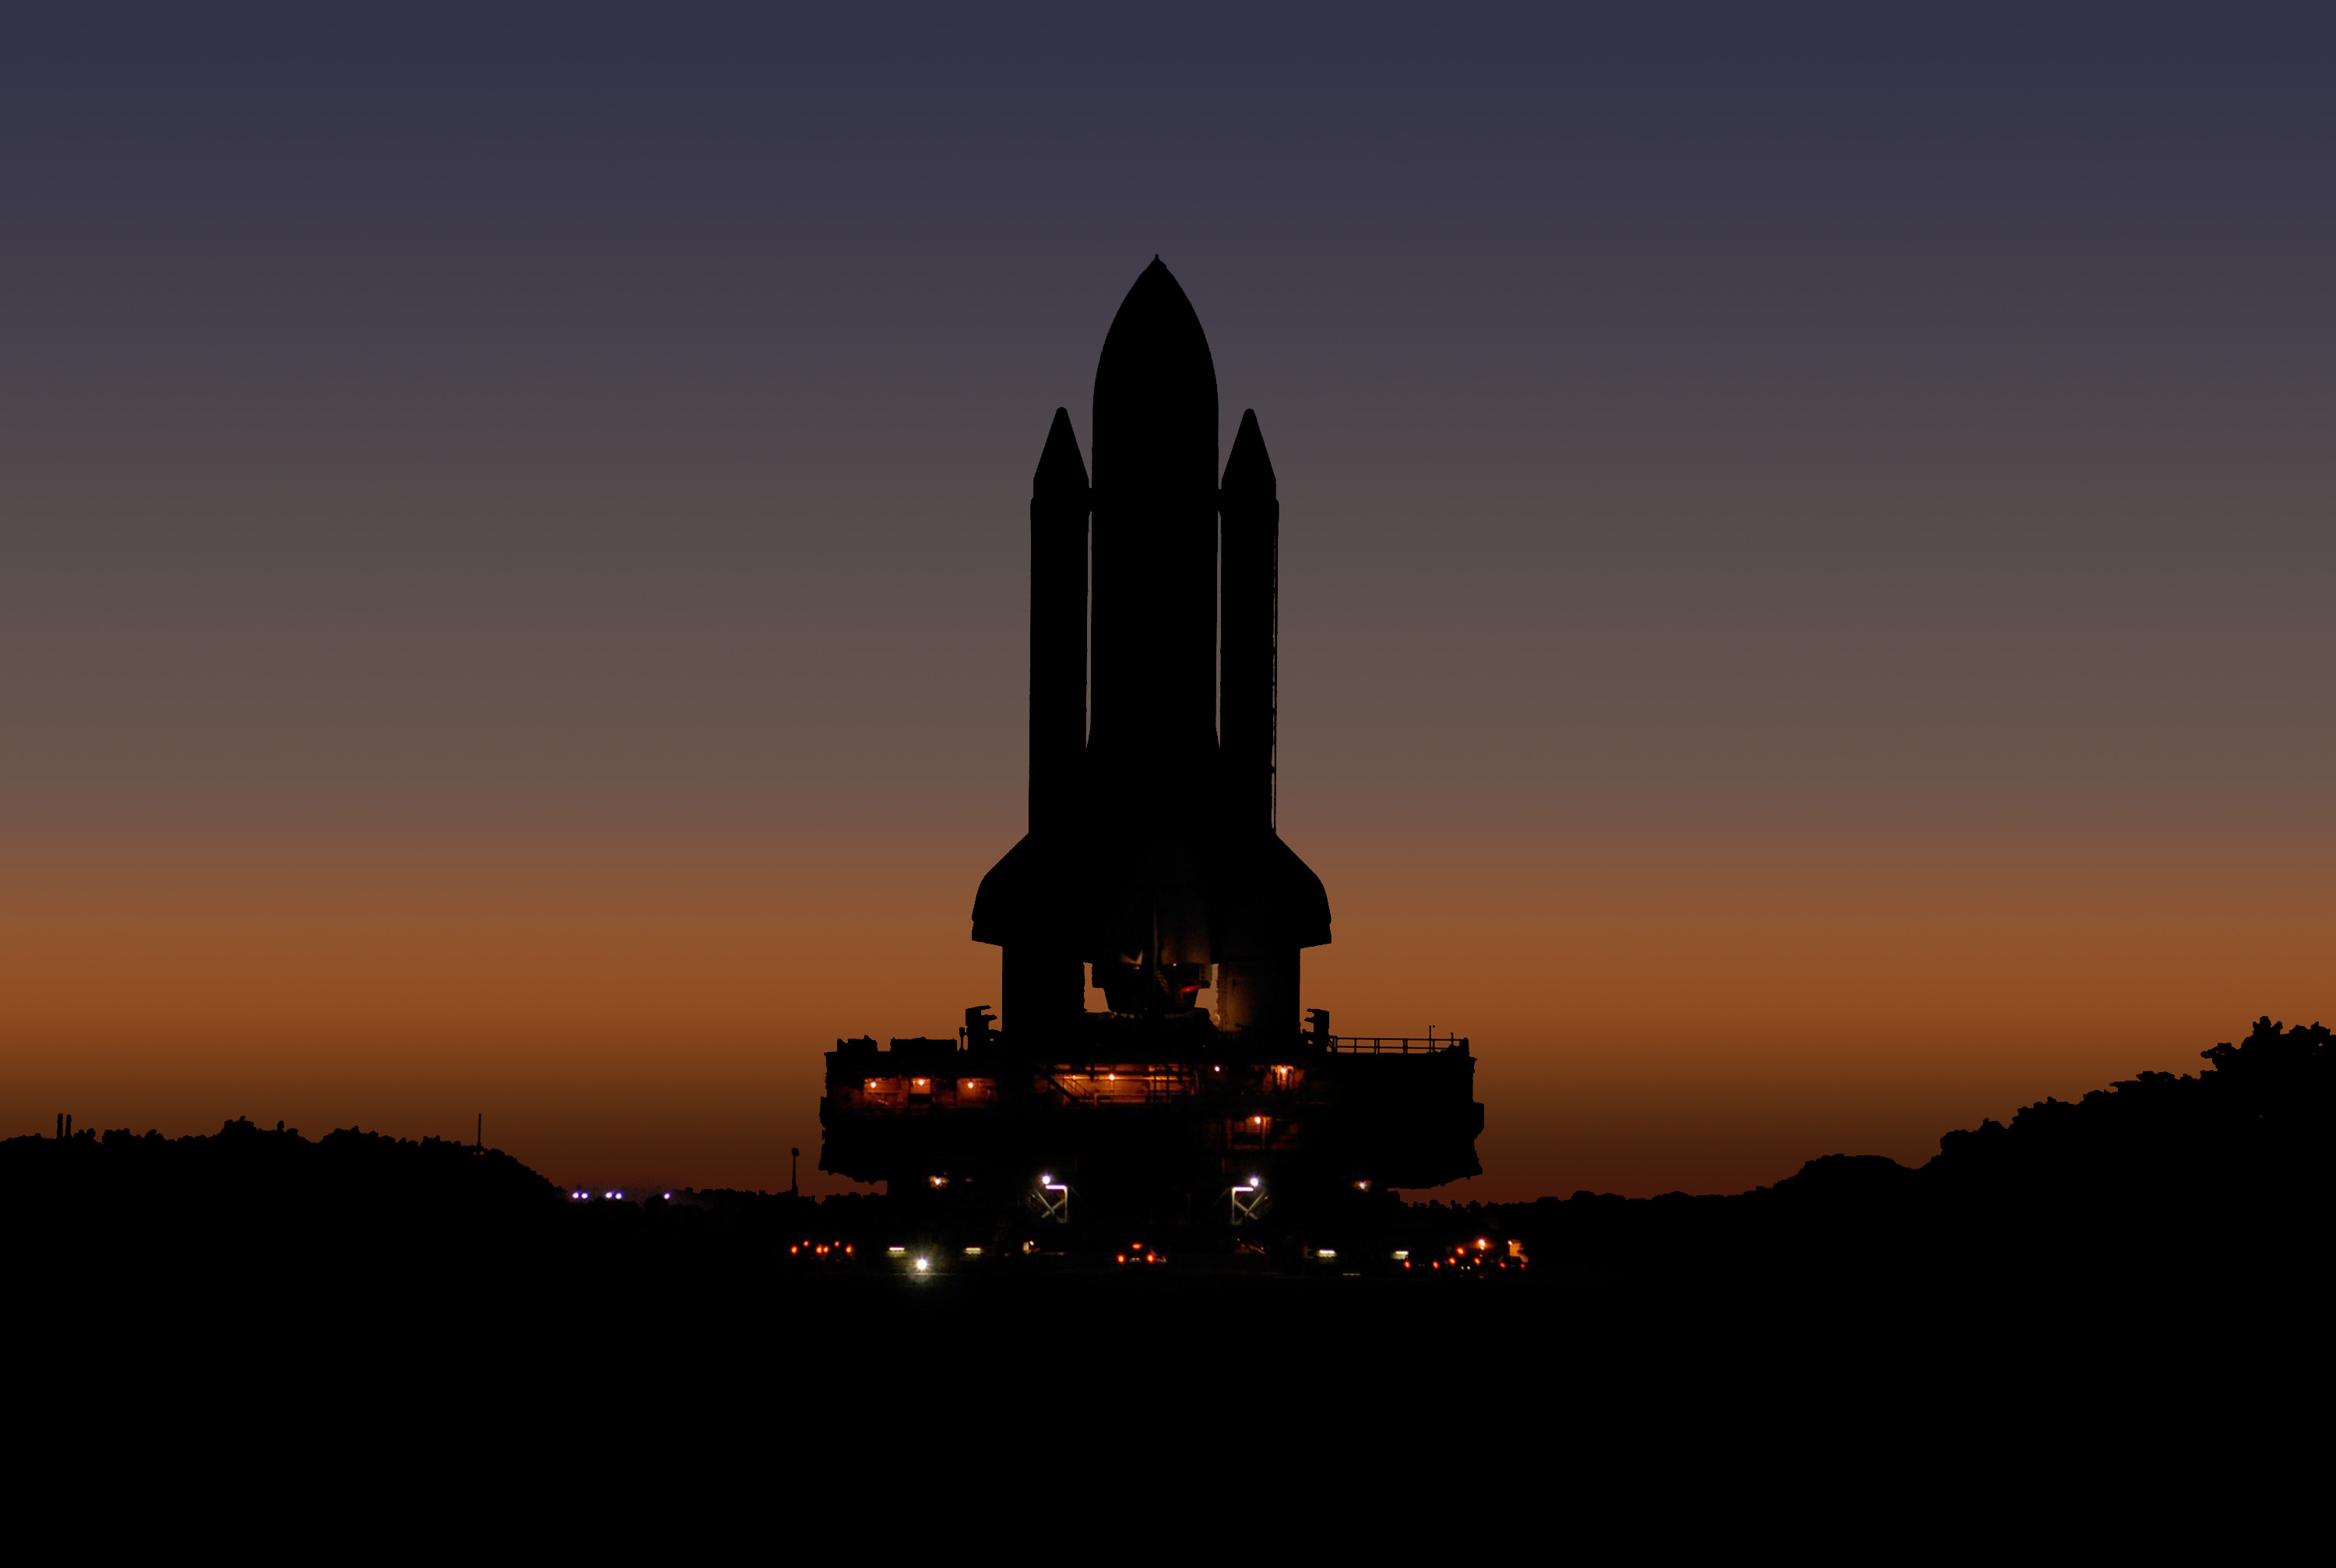 3000x2014 HD Wallpaper | Background ID:74136.  Vehicles Space Shuttle